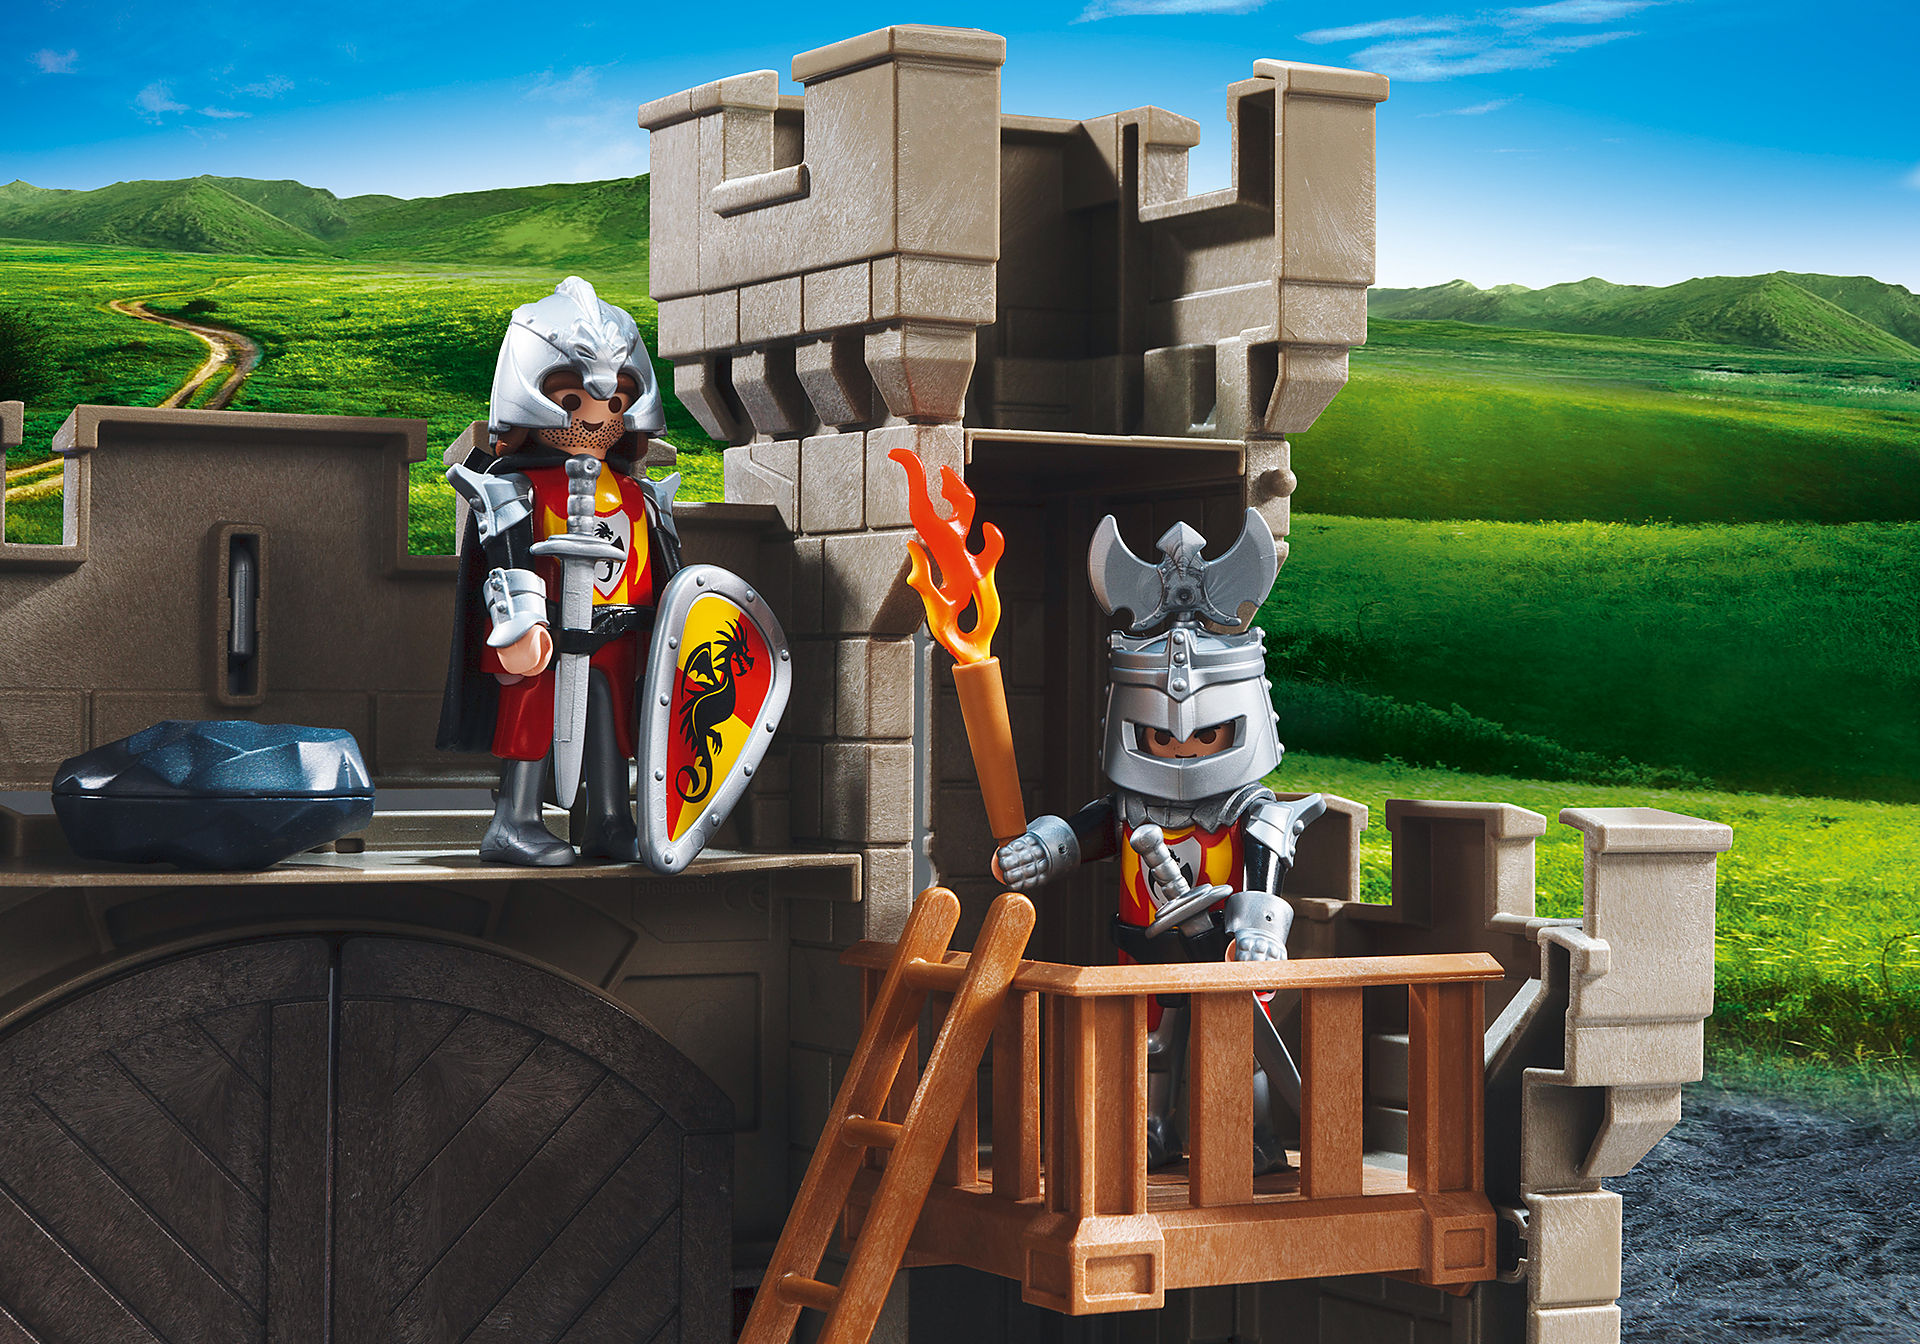 http://media.playmobil.com/i/playmobil/5670_product_extra4/Burgtor mit Riesentroll